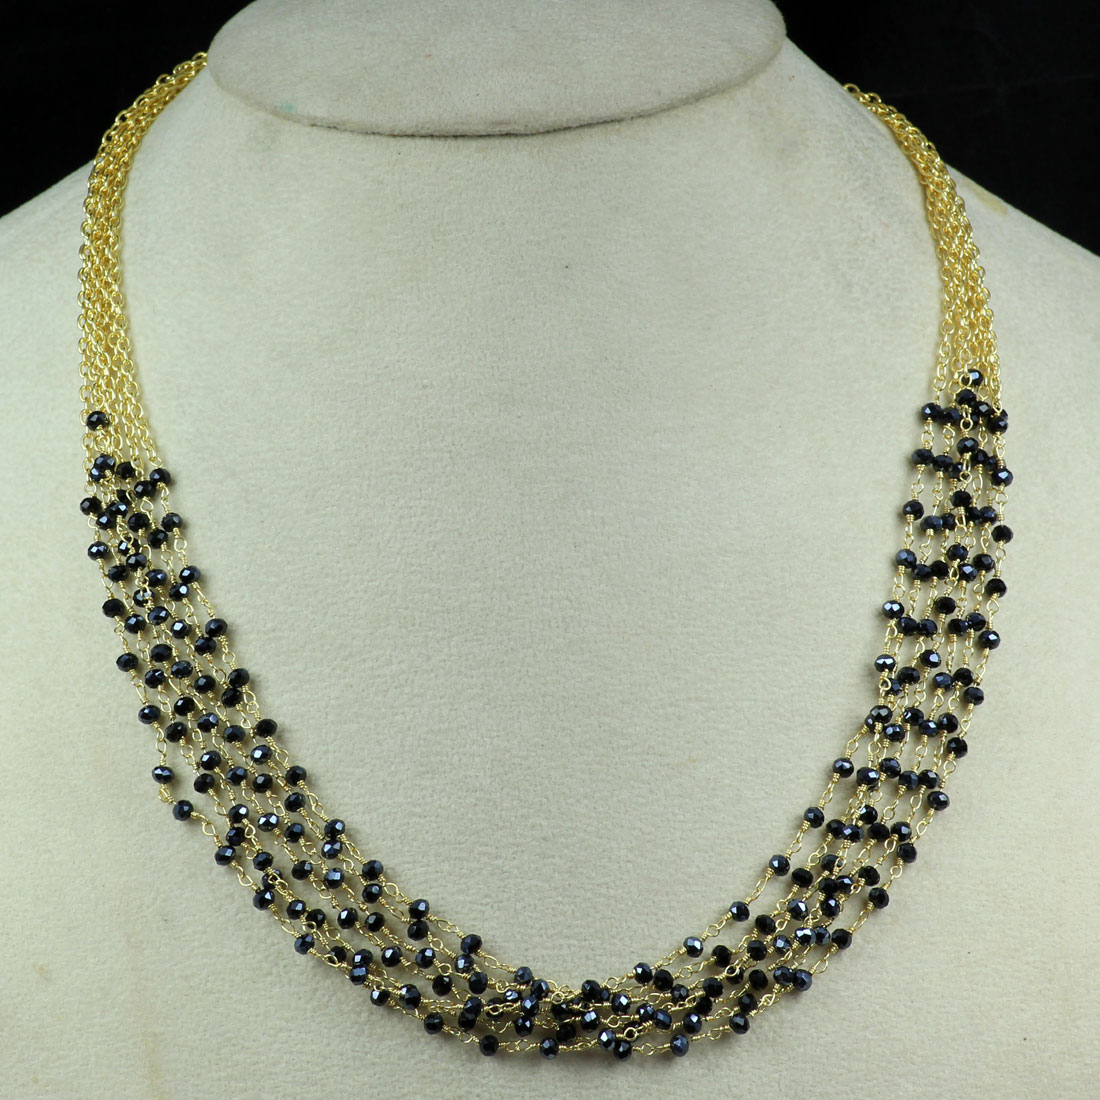 Black Colour I - BD991-New Indian Designer Wholesale Handmade Brass Neckless